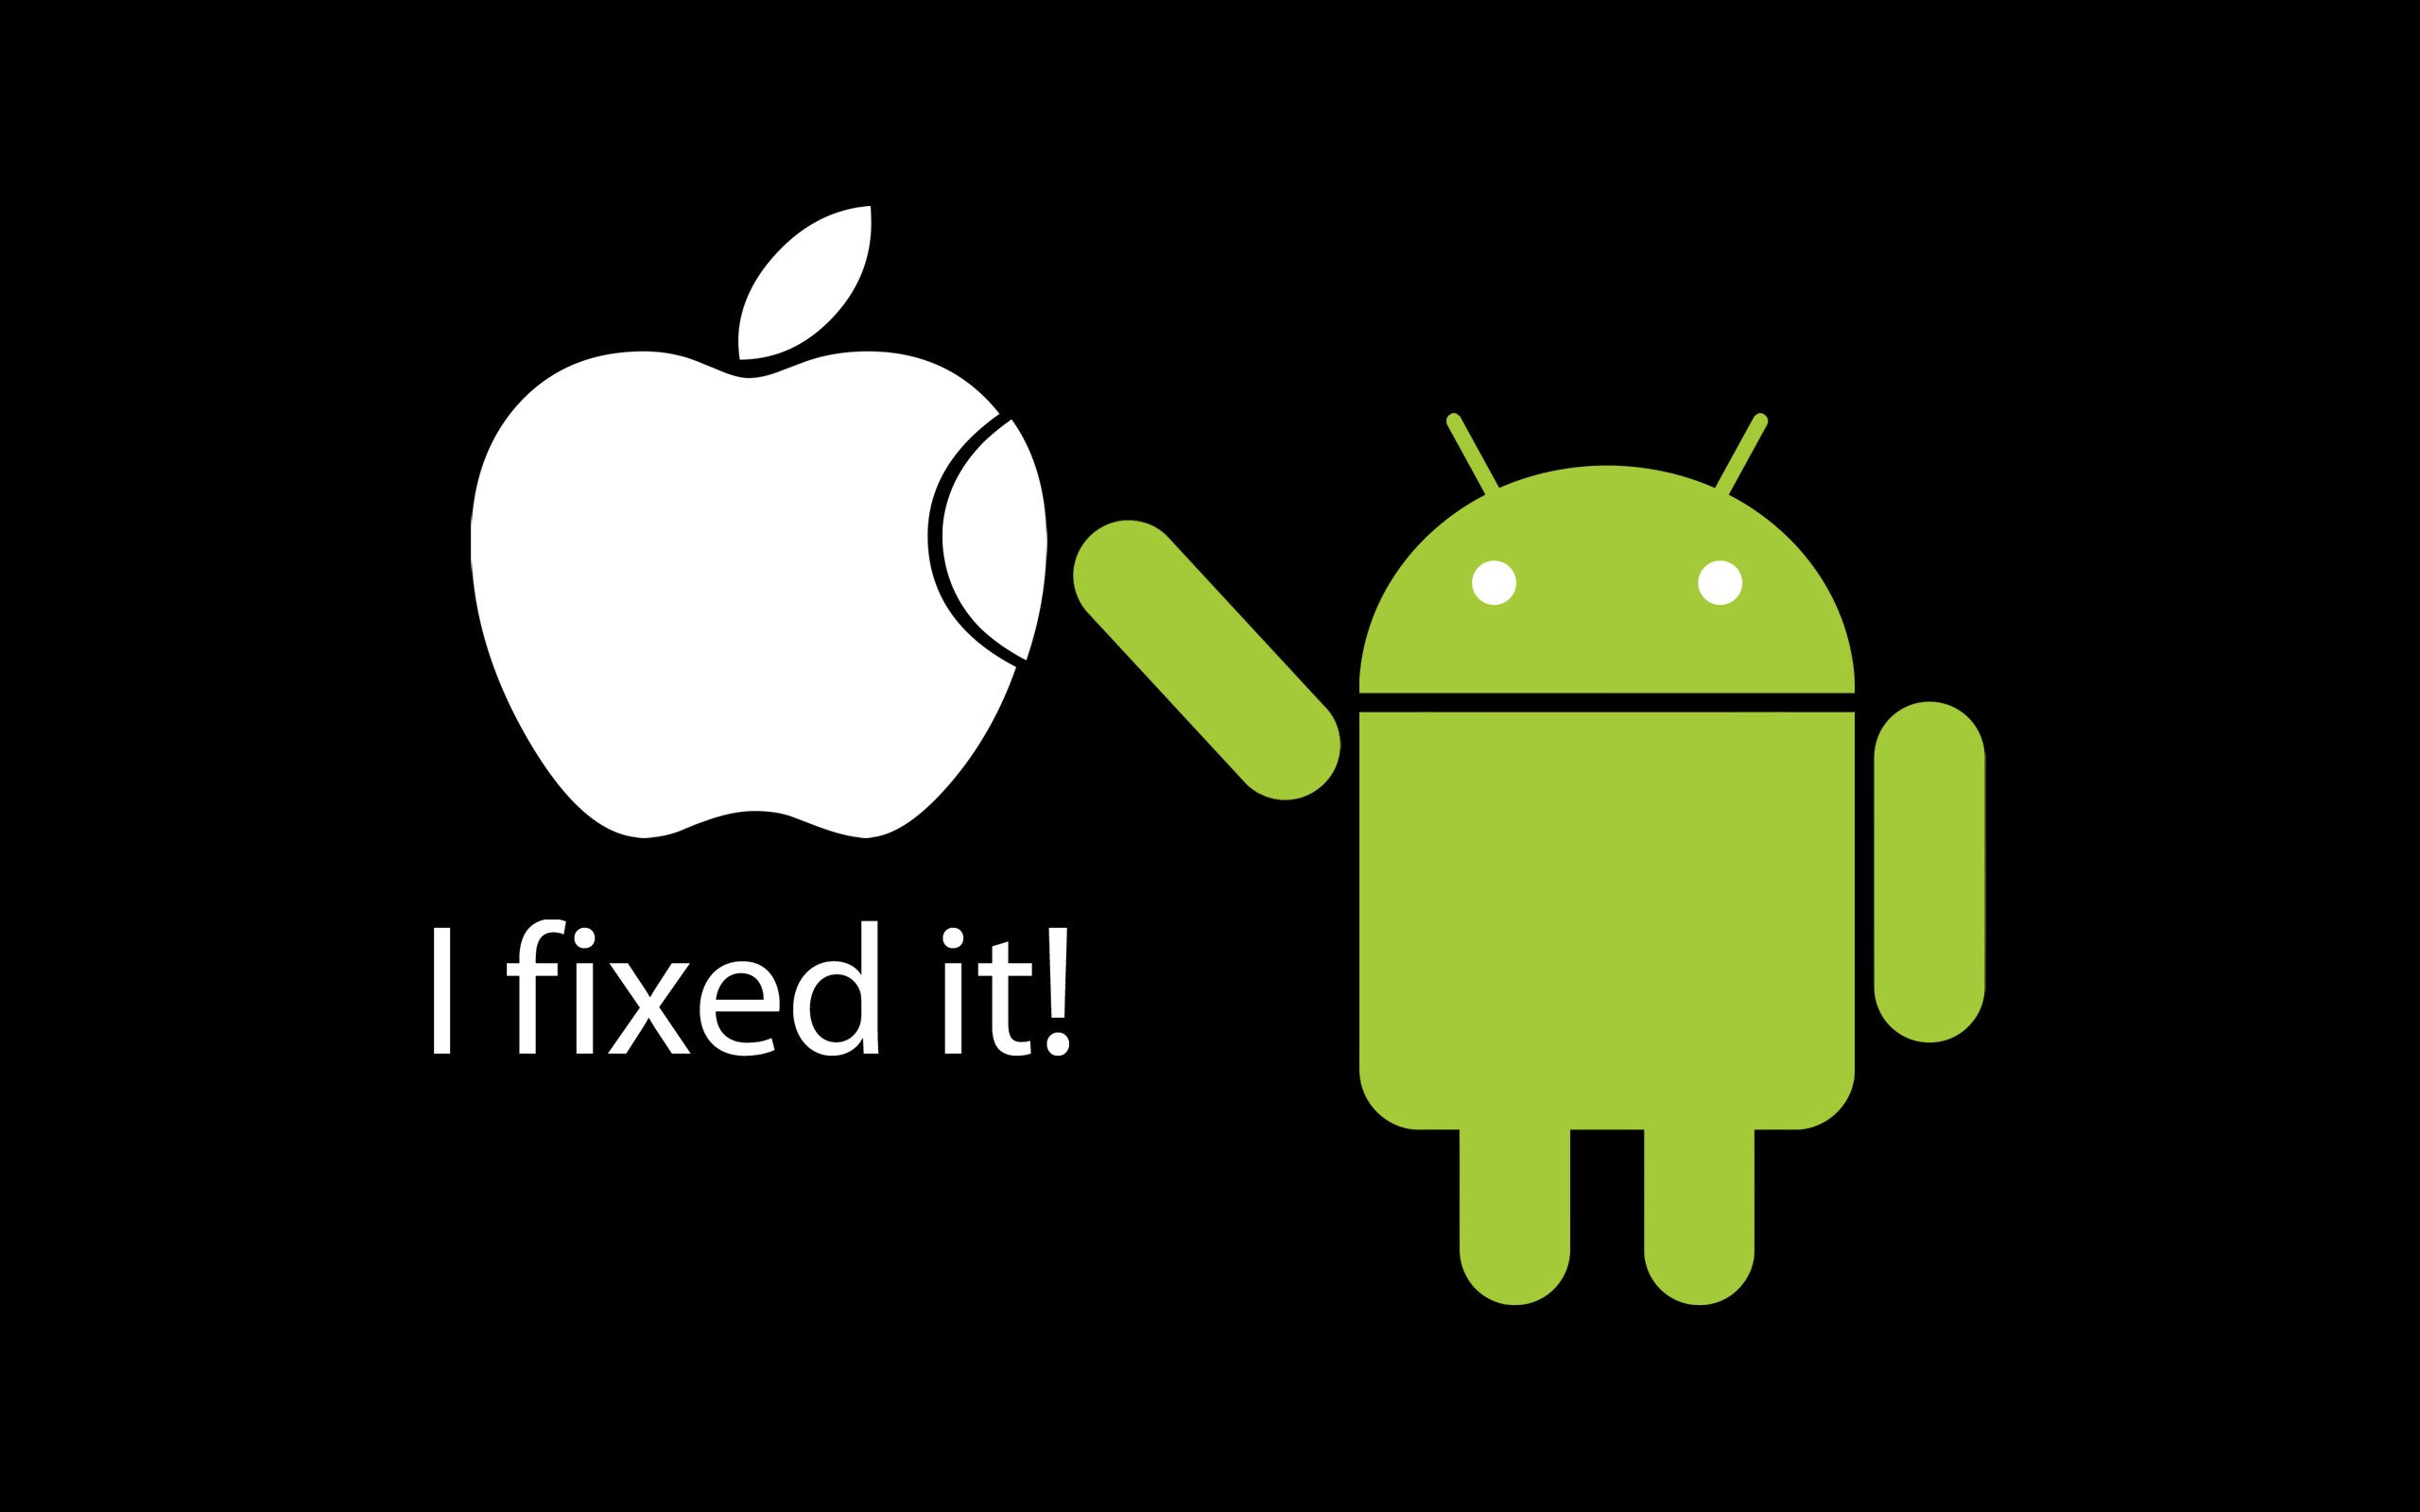 Android Fixes Apple Wallpaper 2560x1600 1092 Wallpaperup